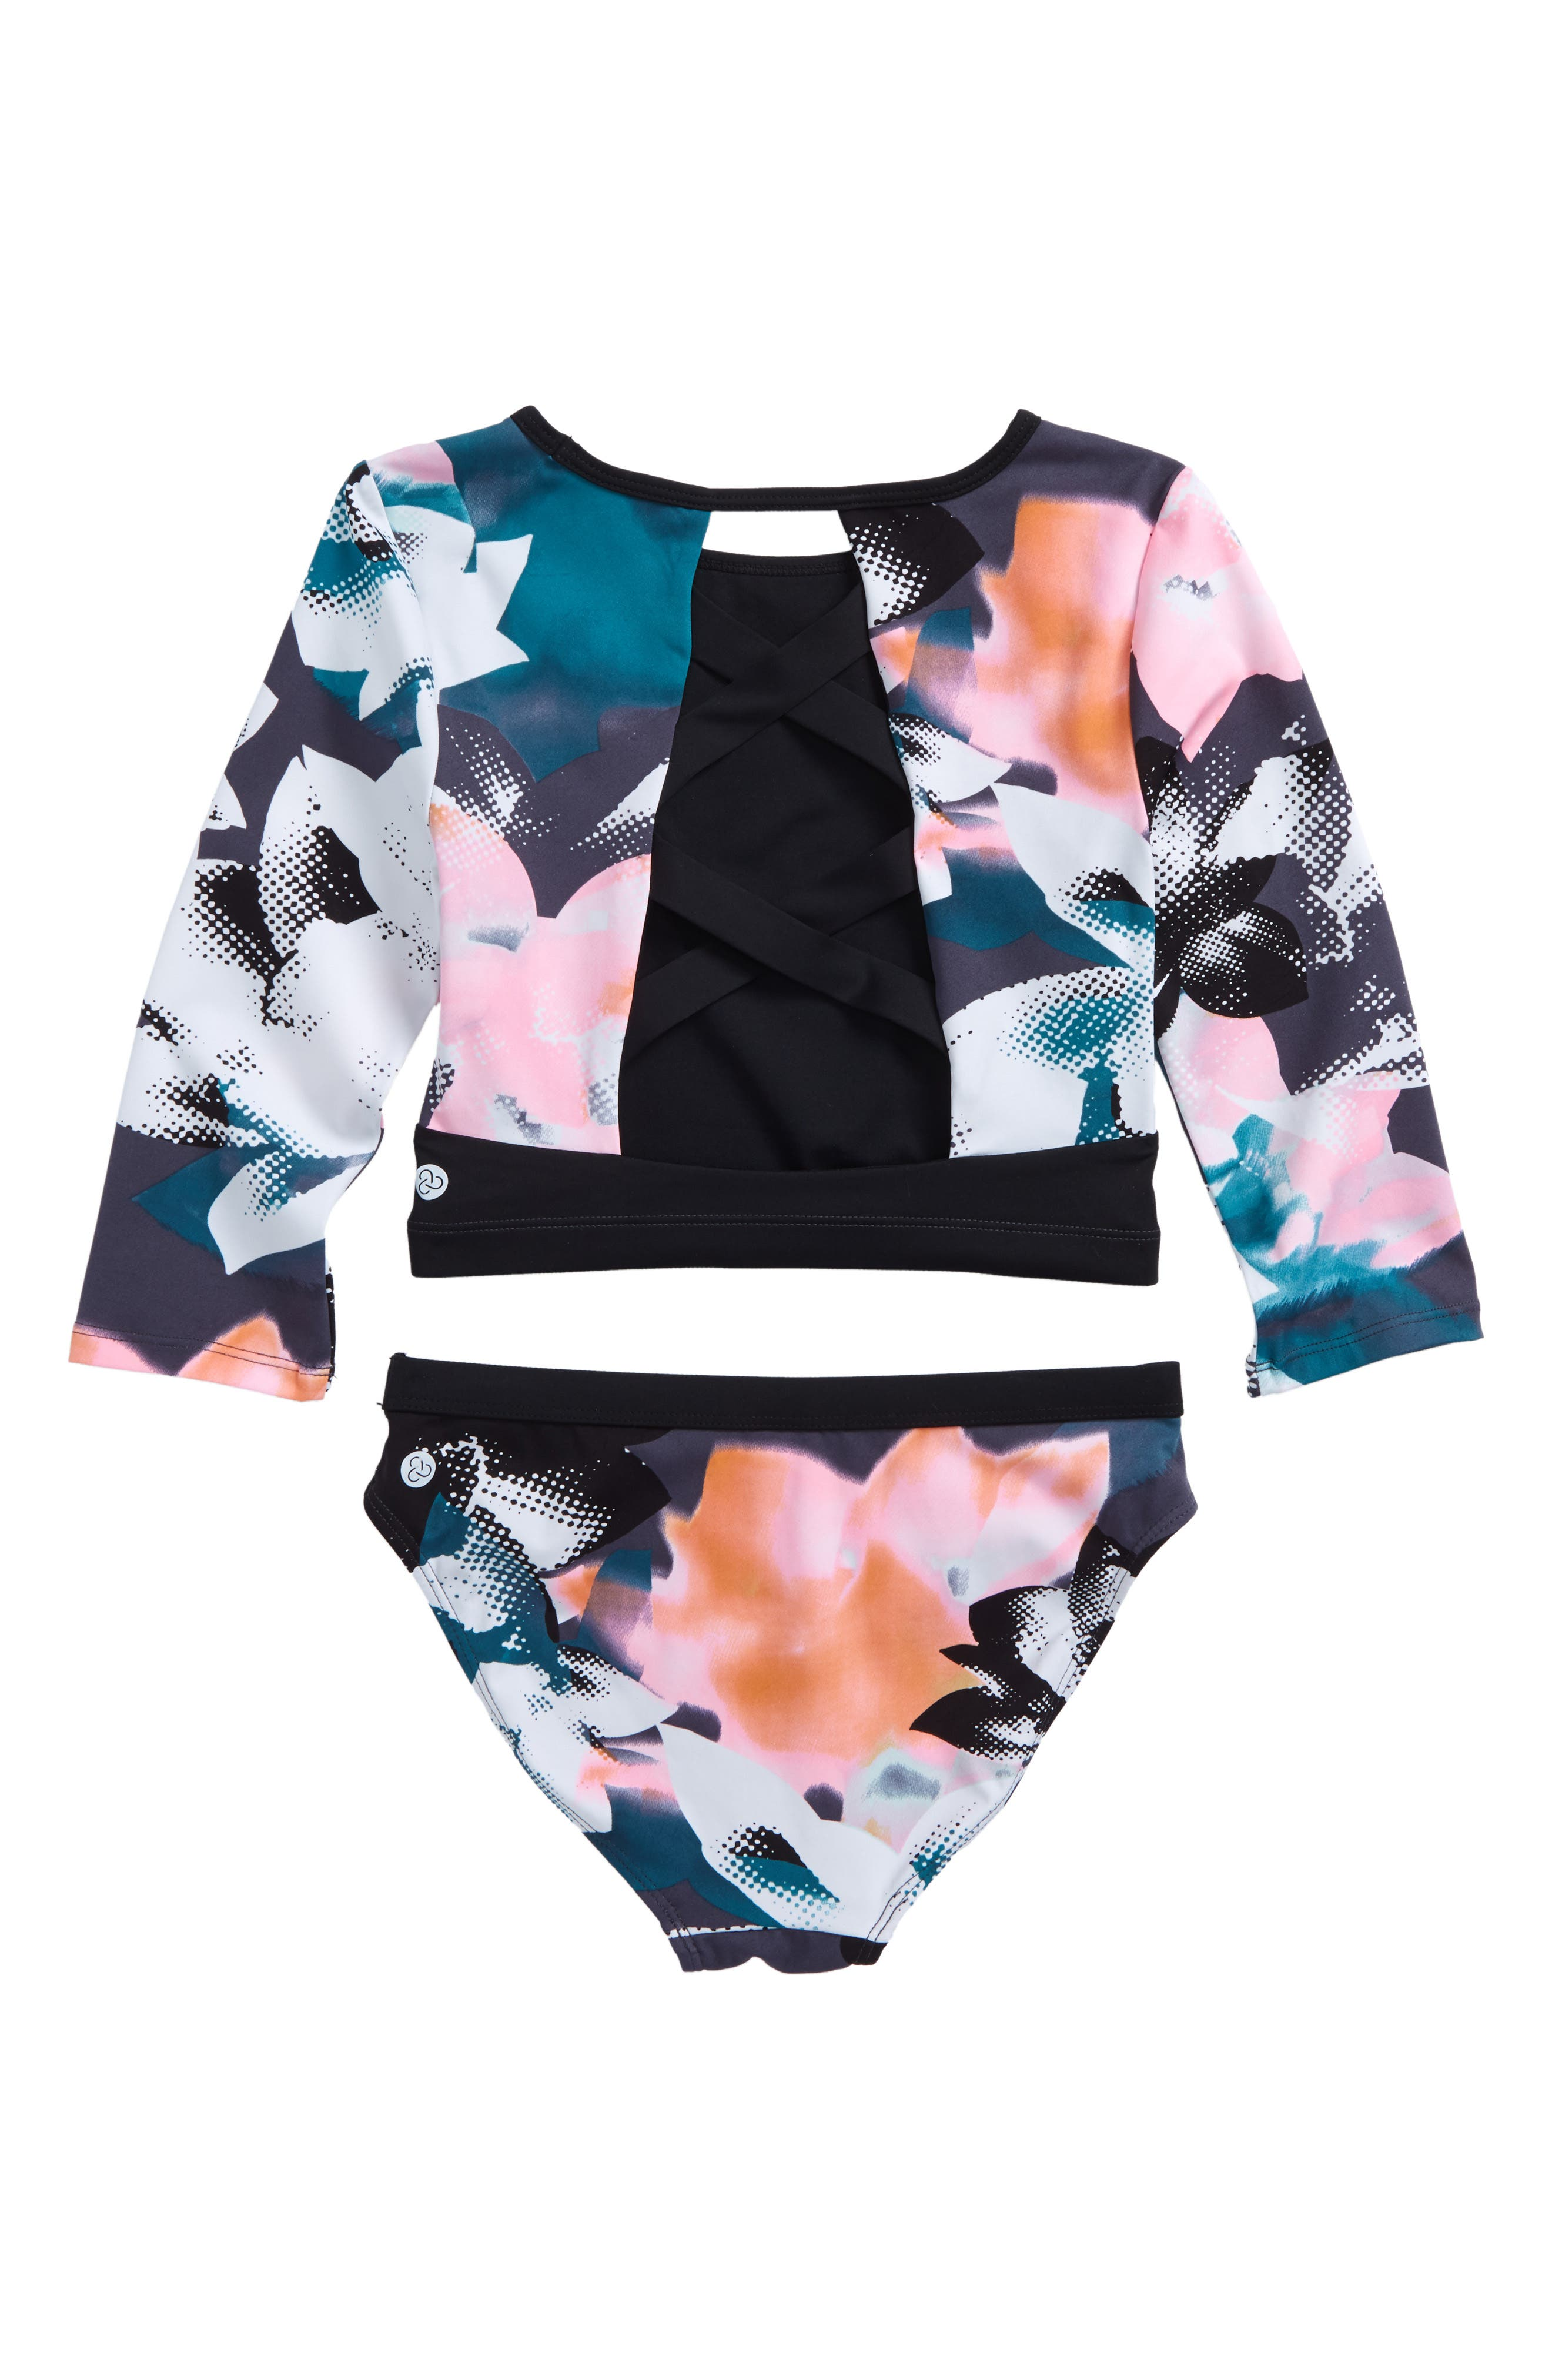 ZELLA GIRL, Scoop Two-Piece Rashguard Swimsuit, Alternate thumbnail 2, color, 001